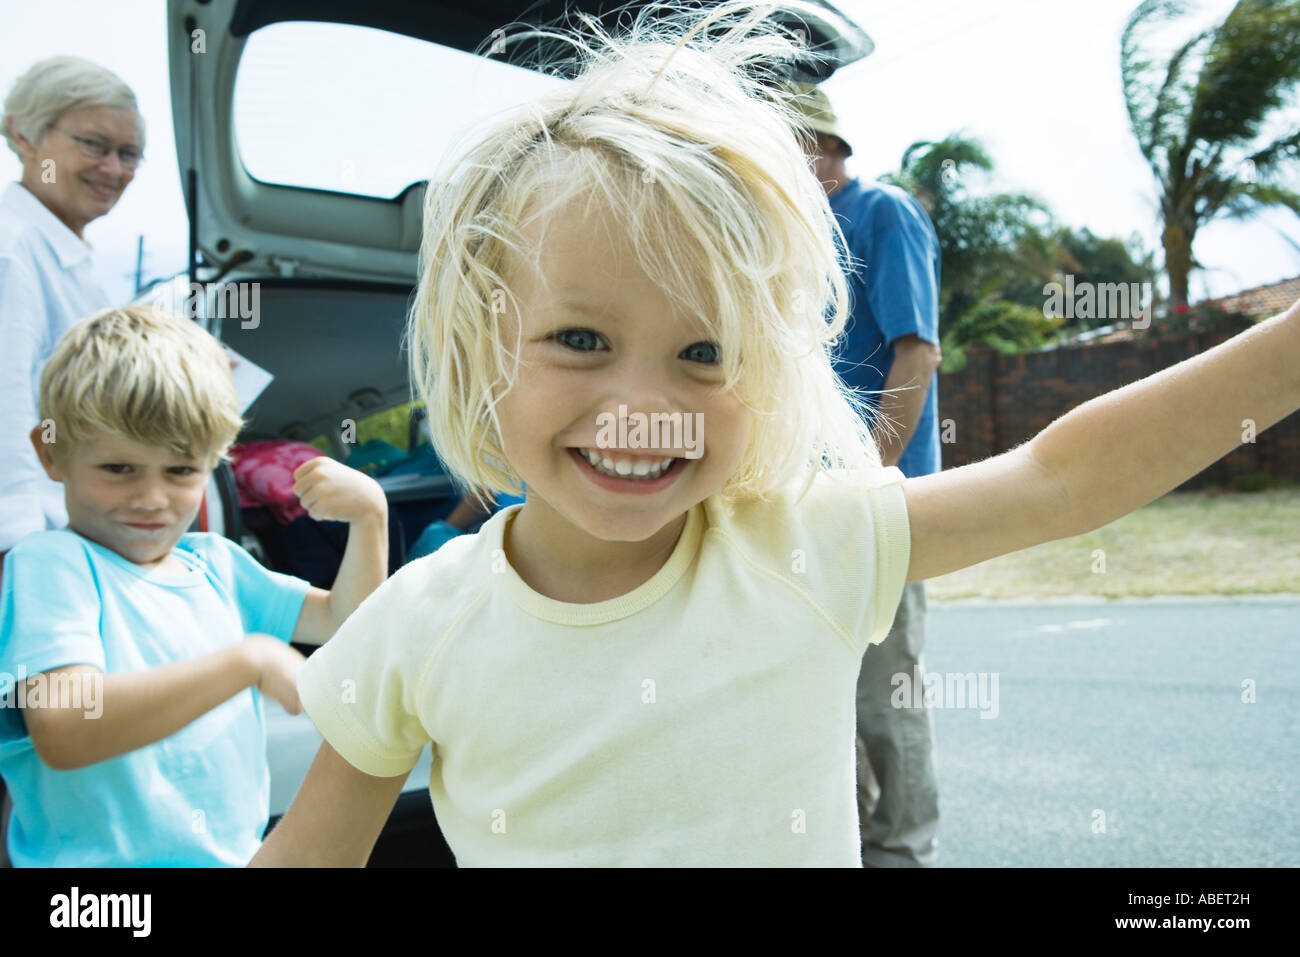 Family unloading trunk of car, focus on little girl in foreground Stock Photo